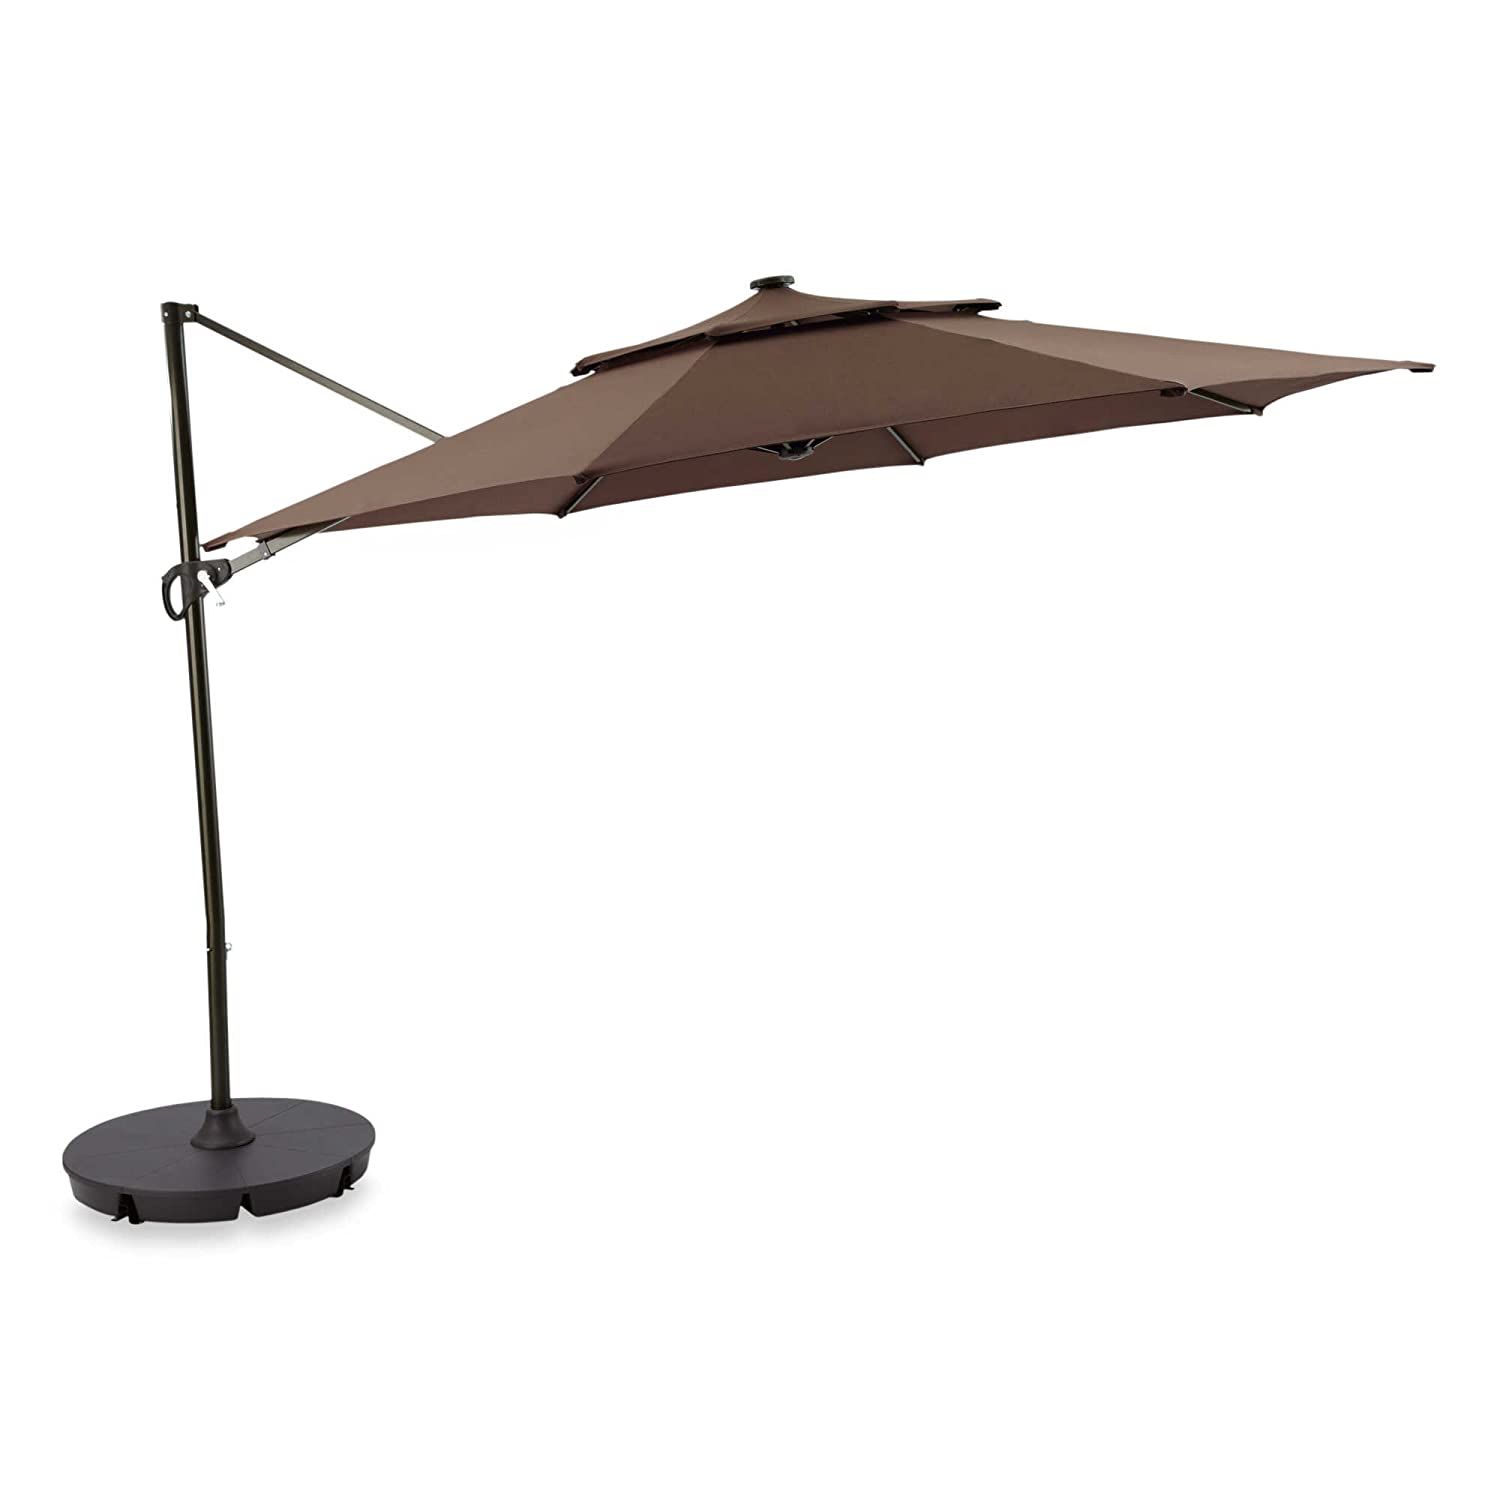 Amazon.com : Outdoor Patio Cantilever Umbrella 11 Foot Round Canopy With  Solor Powered Lights Includes Base Stand And Storage Cover (Mocha) : Garden  U0026 ...